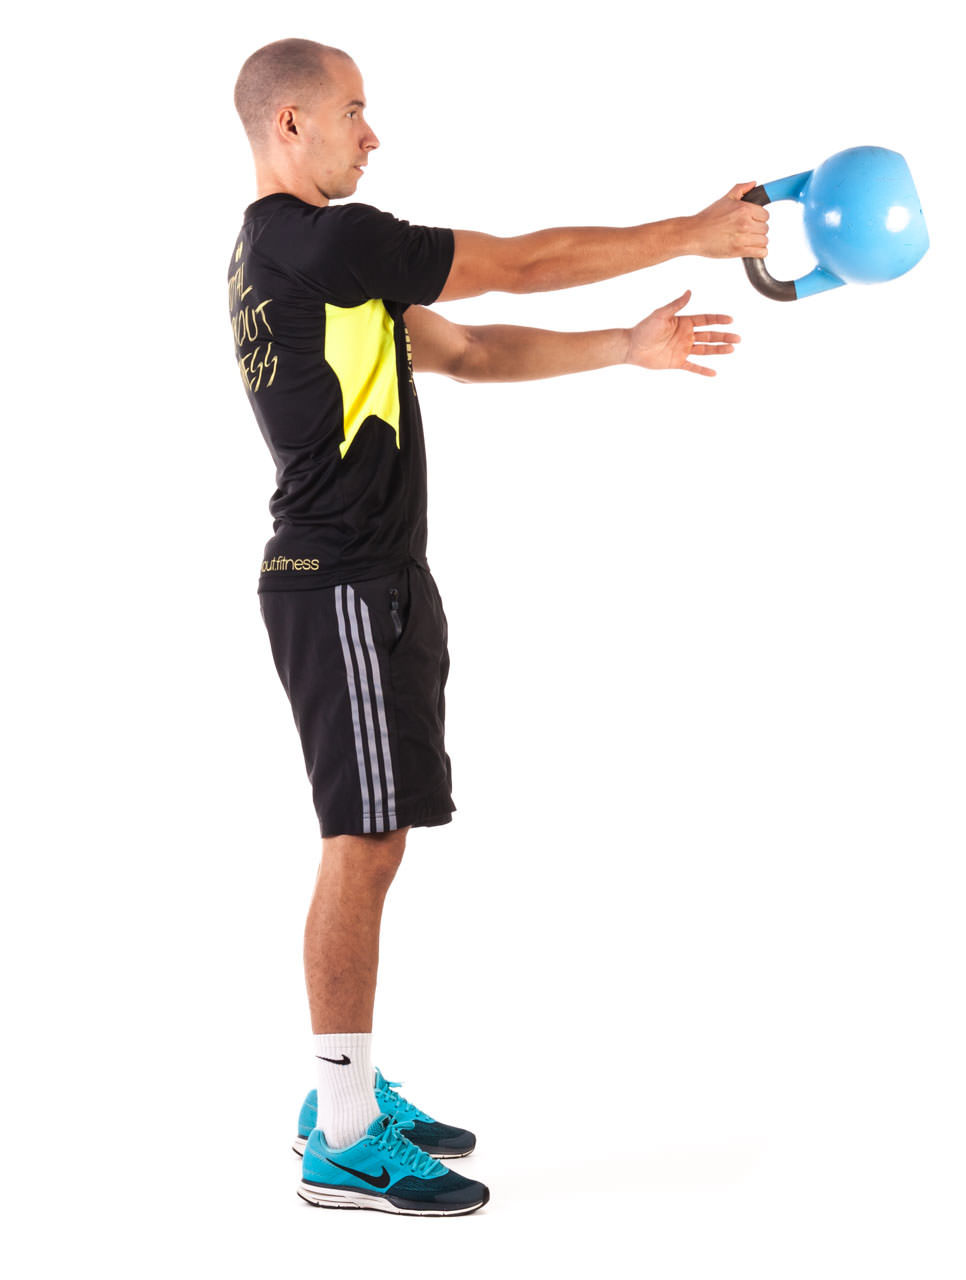 One-Arm Kettlebell Swing frame #7